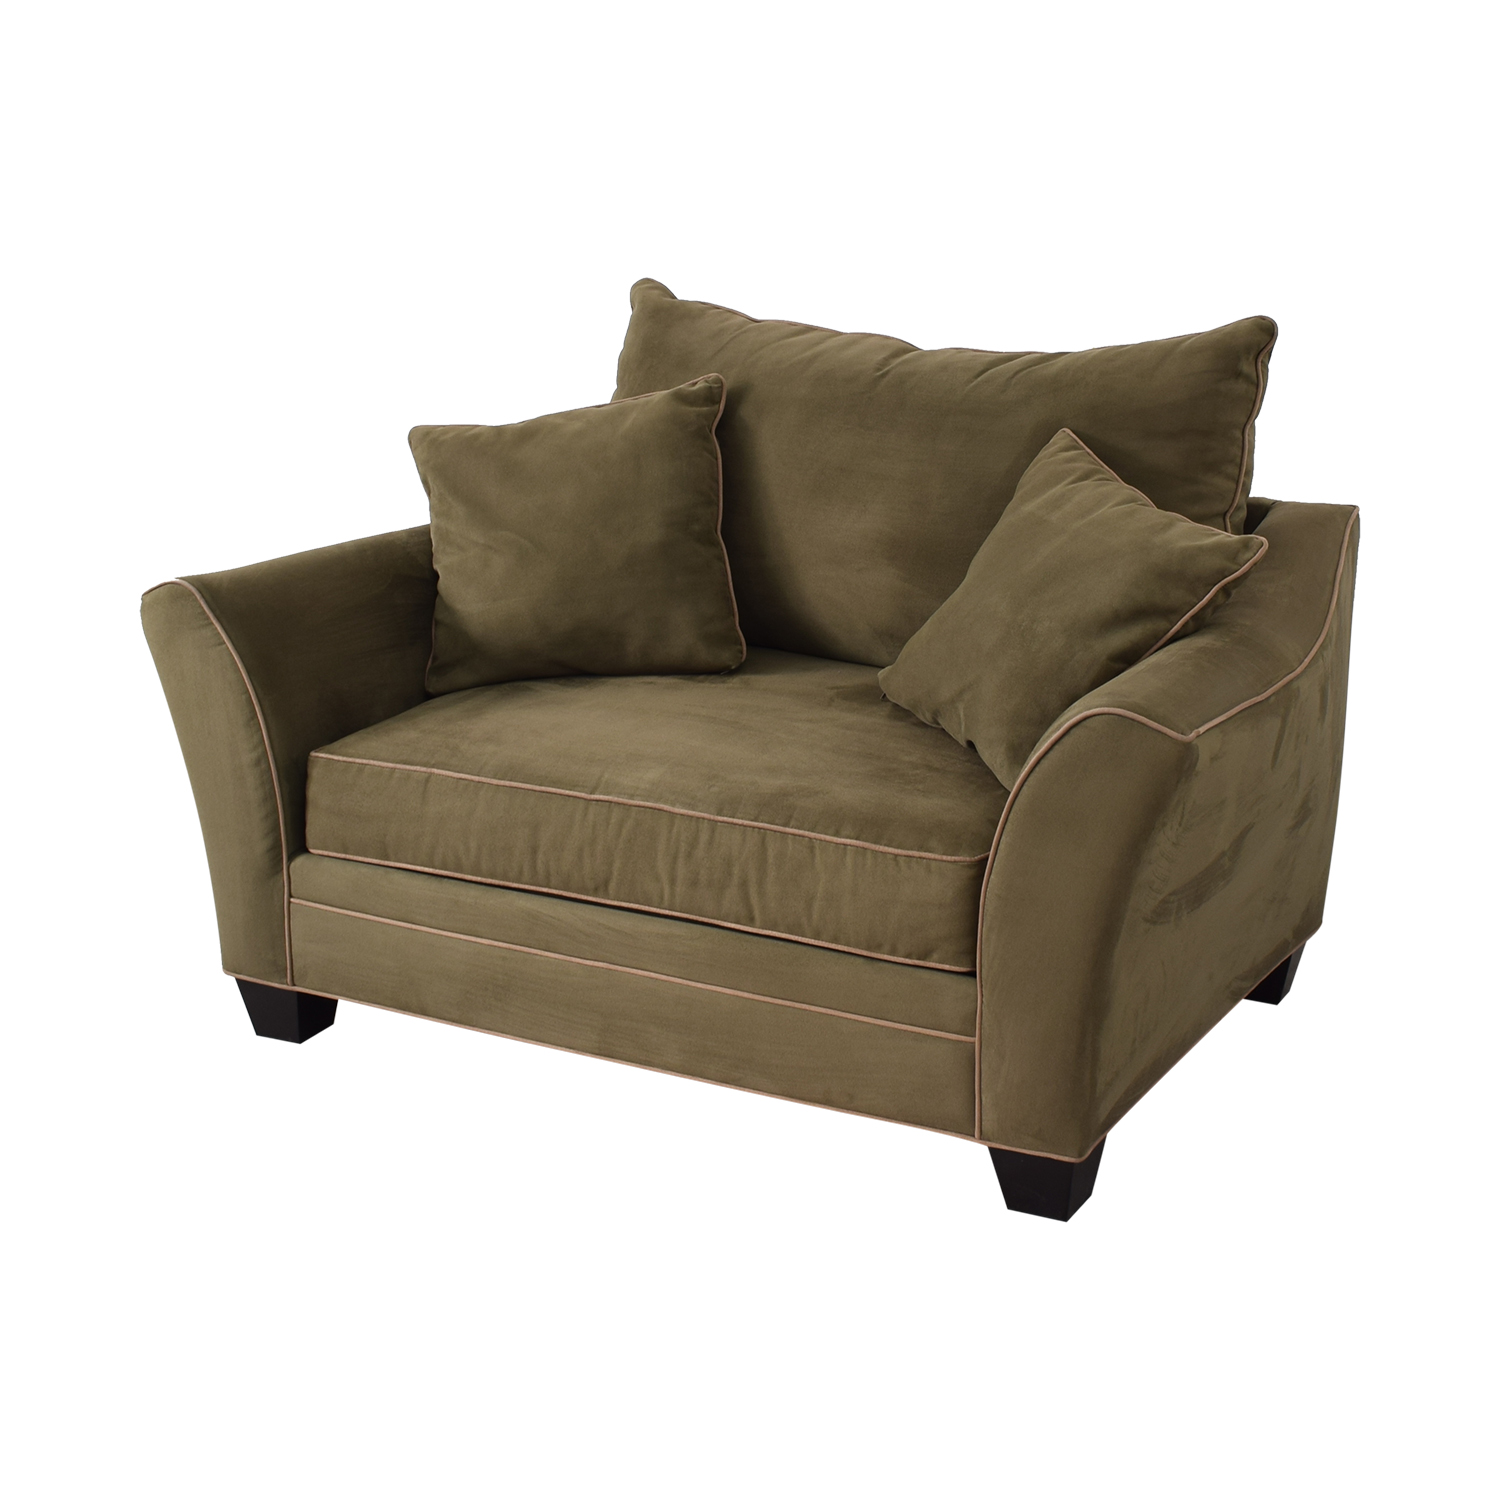 Raymour Flanigan Briarwood Microfiber Chair And A Half